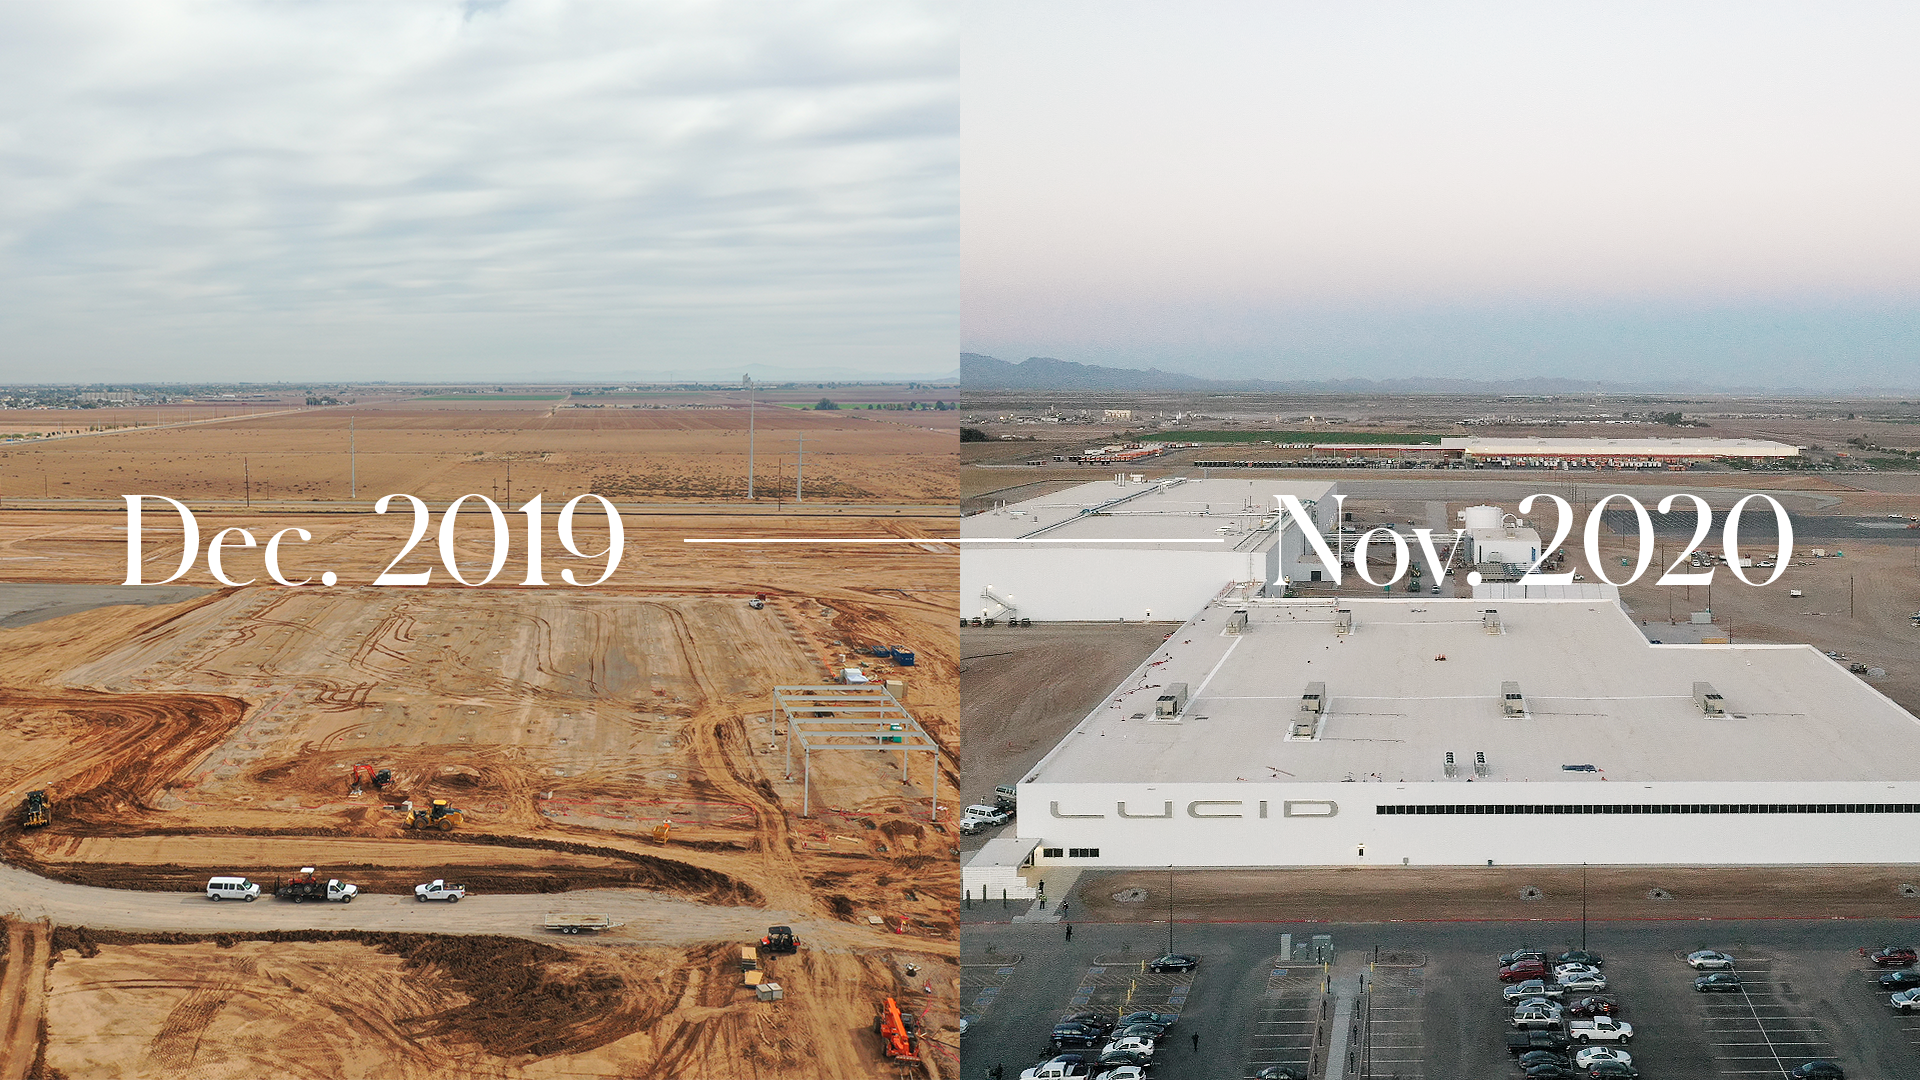 Lucid Motors Casa Grande factory before and after